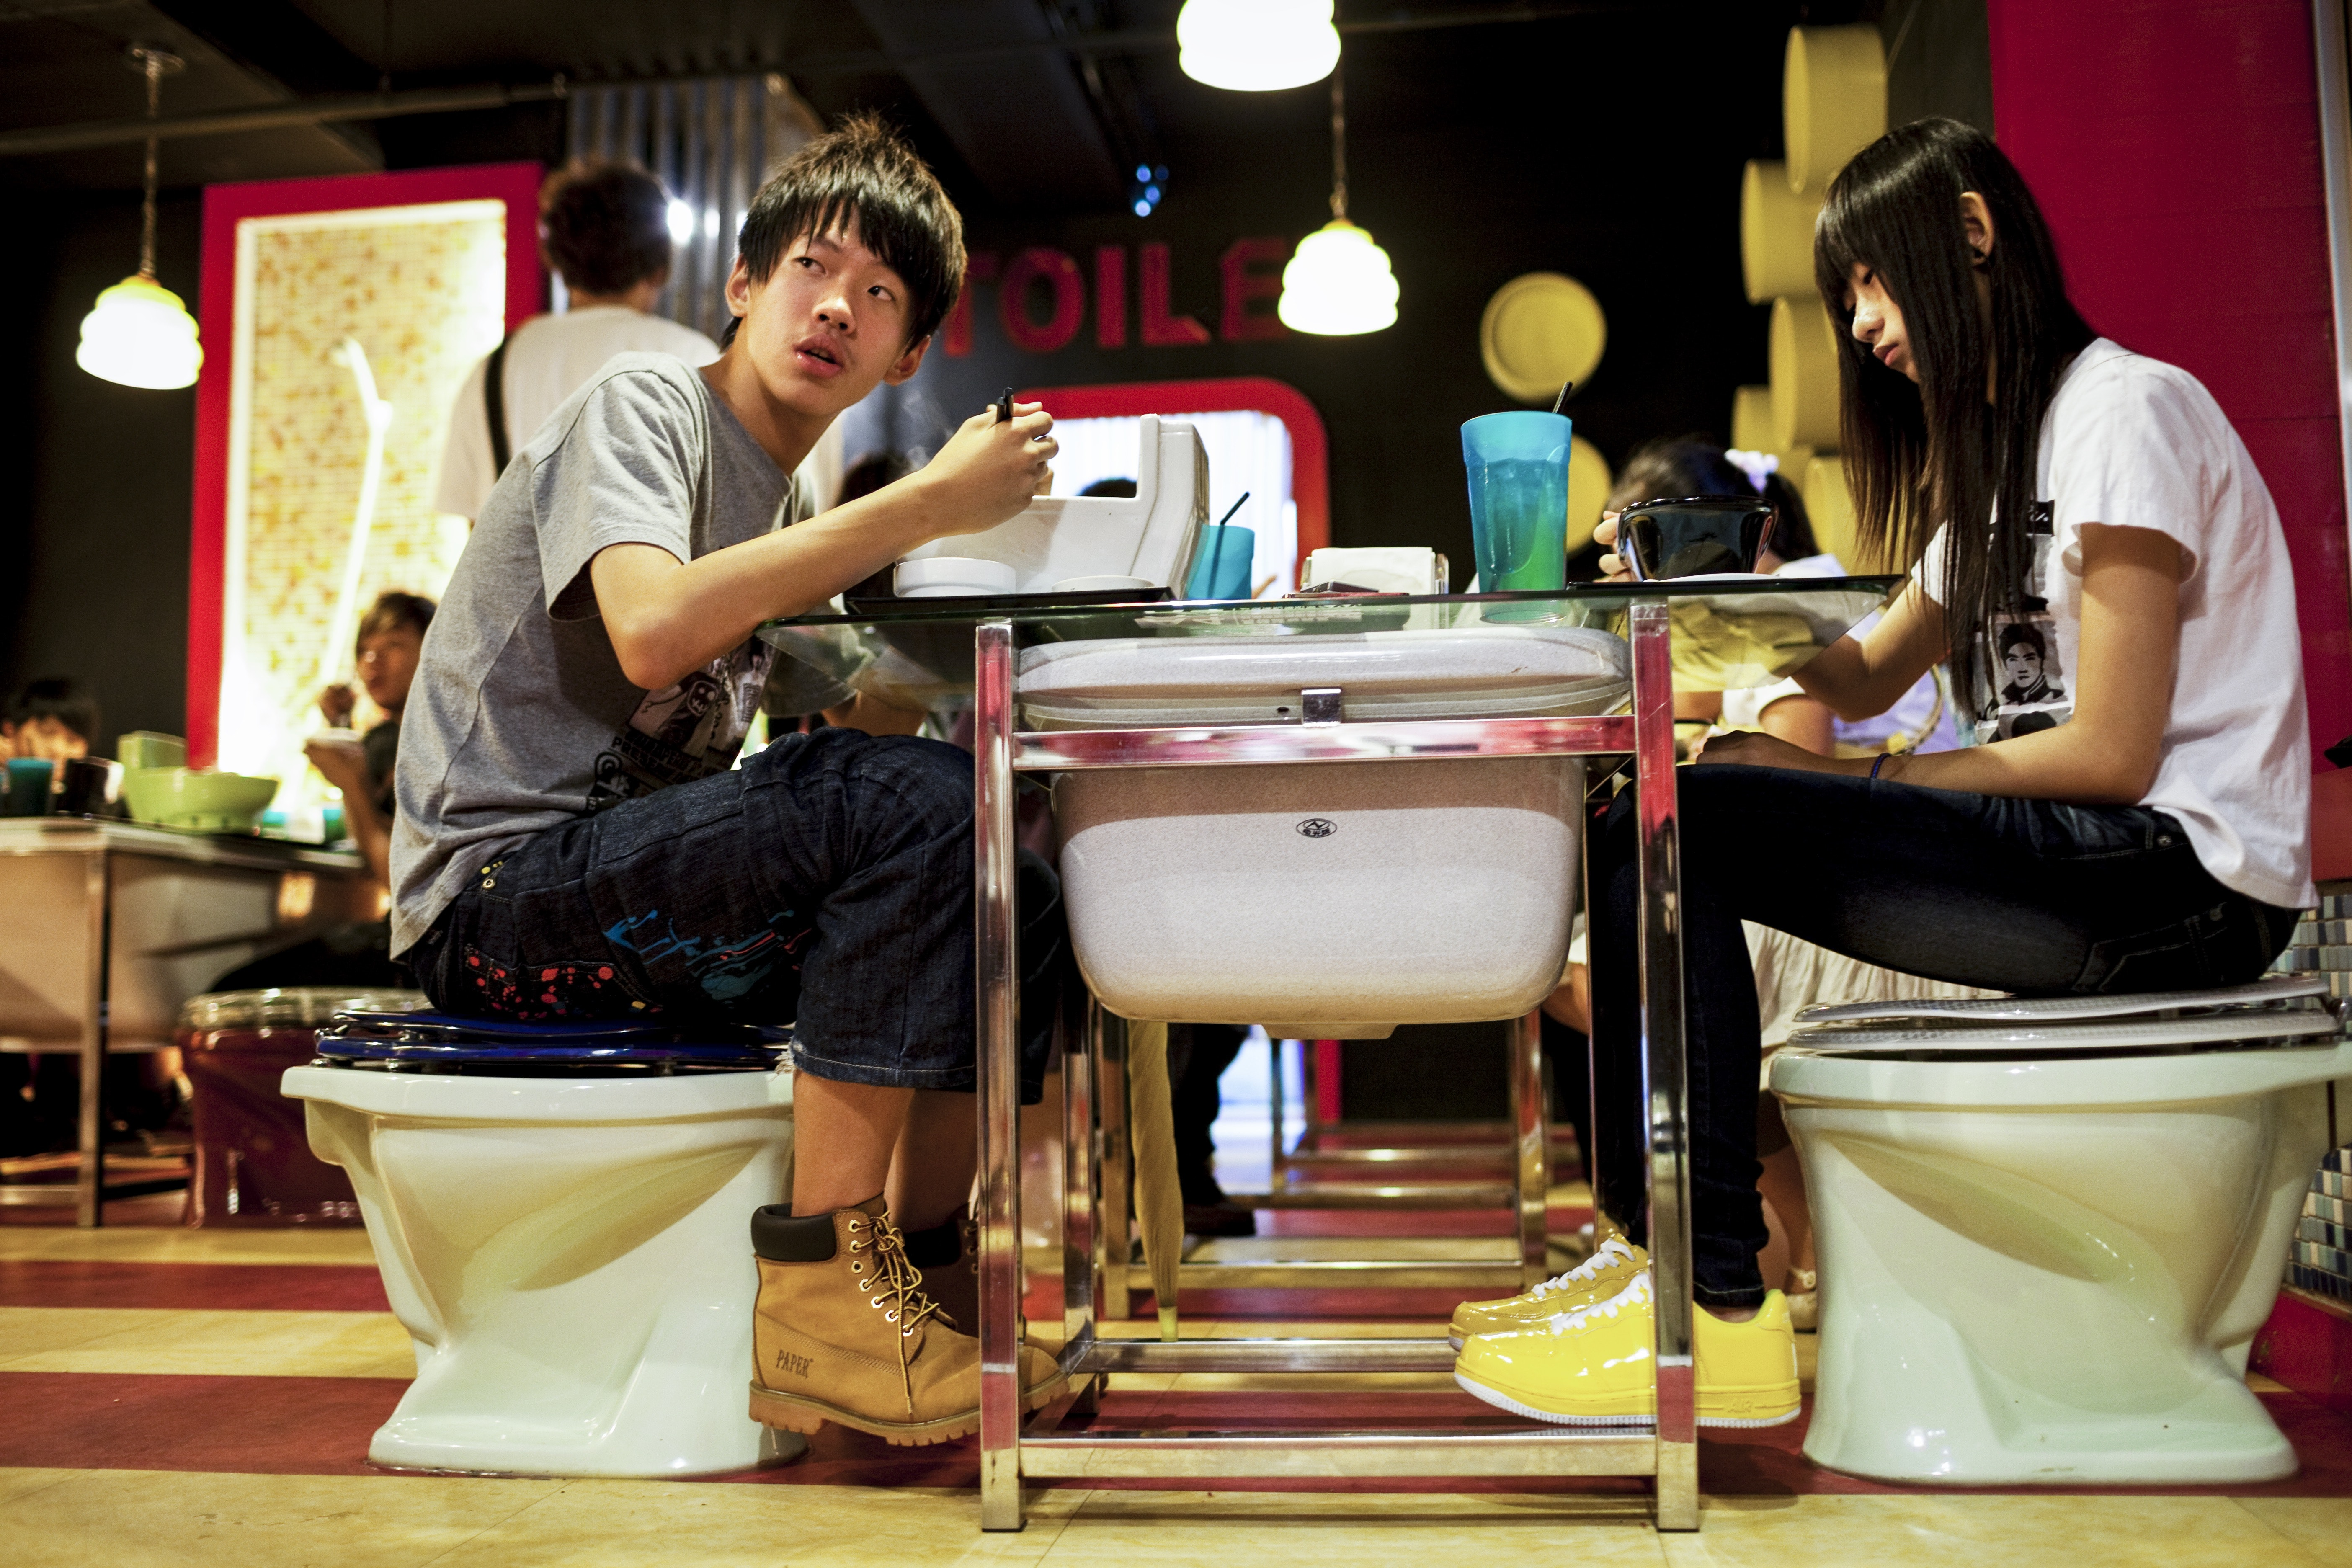 At Modern Toilet, a national chain in Taiwan, diners eat out of urinals and toilet bowls, all while sitting on the pot.